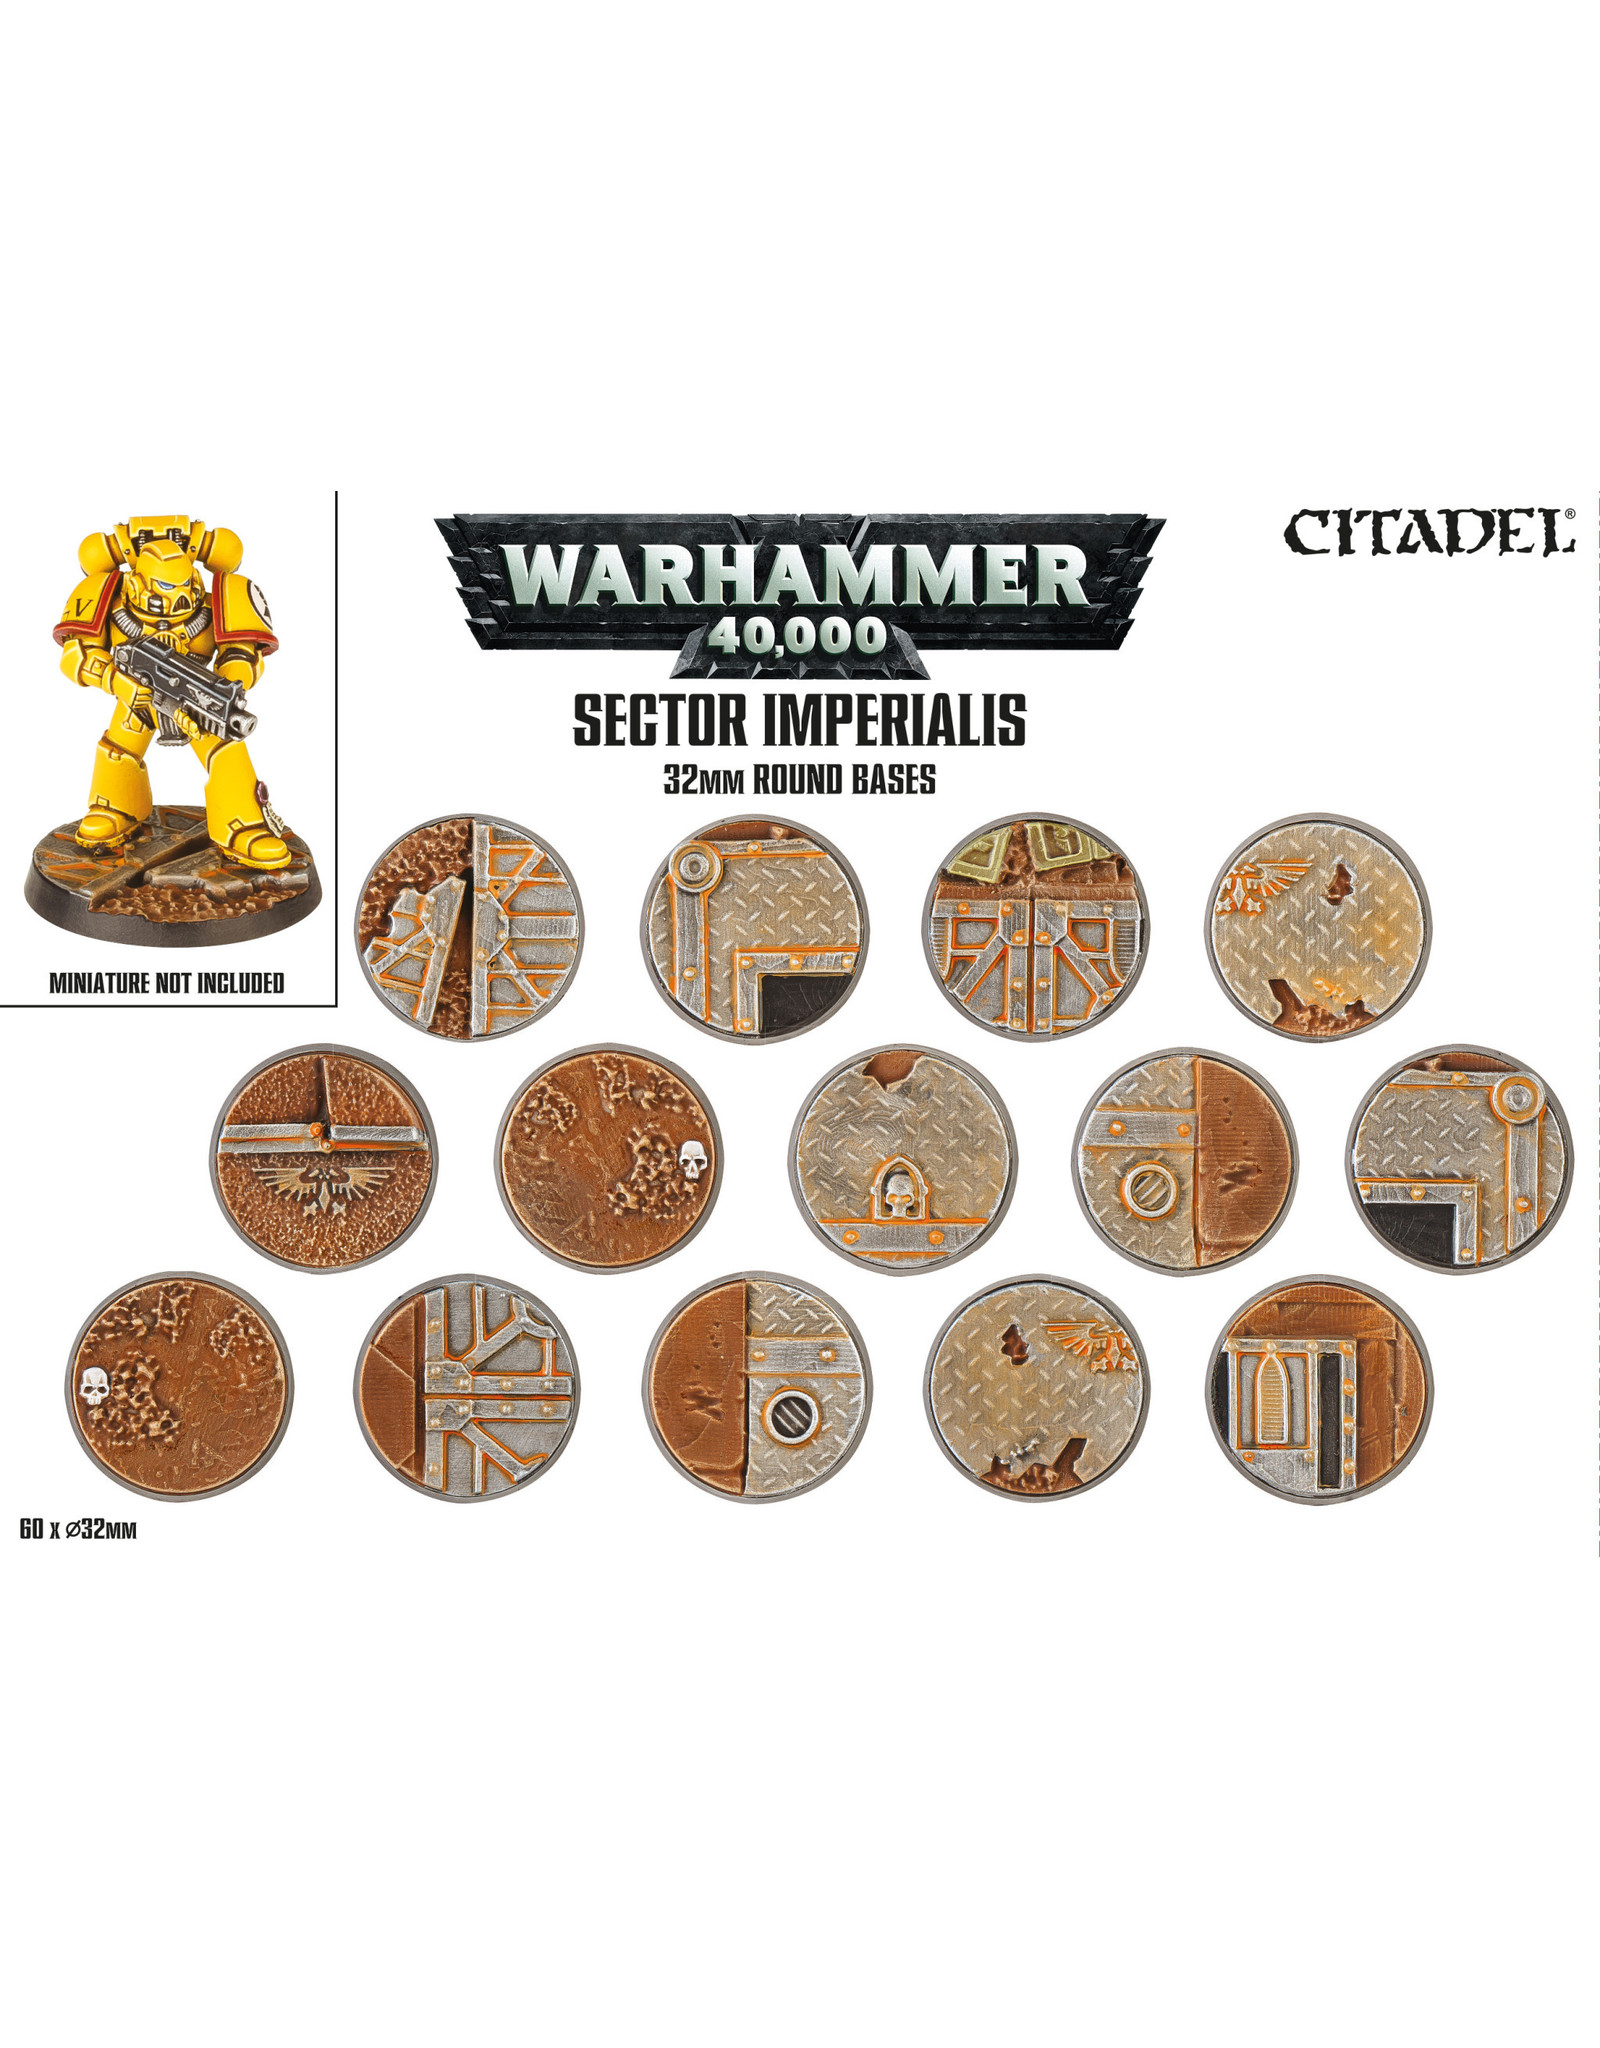 Warhammer 40,000 Sector Imperialis 32mm Round Bases